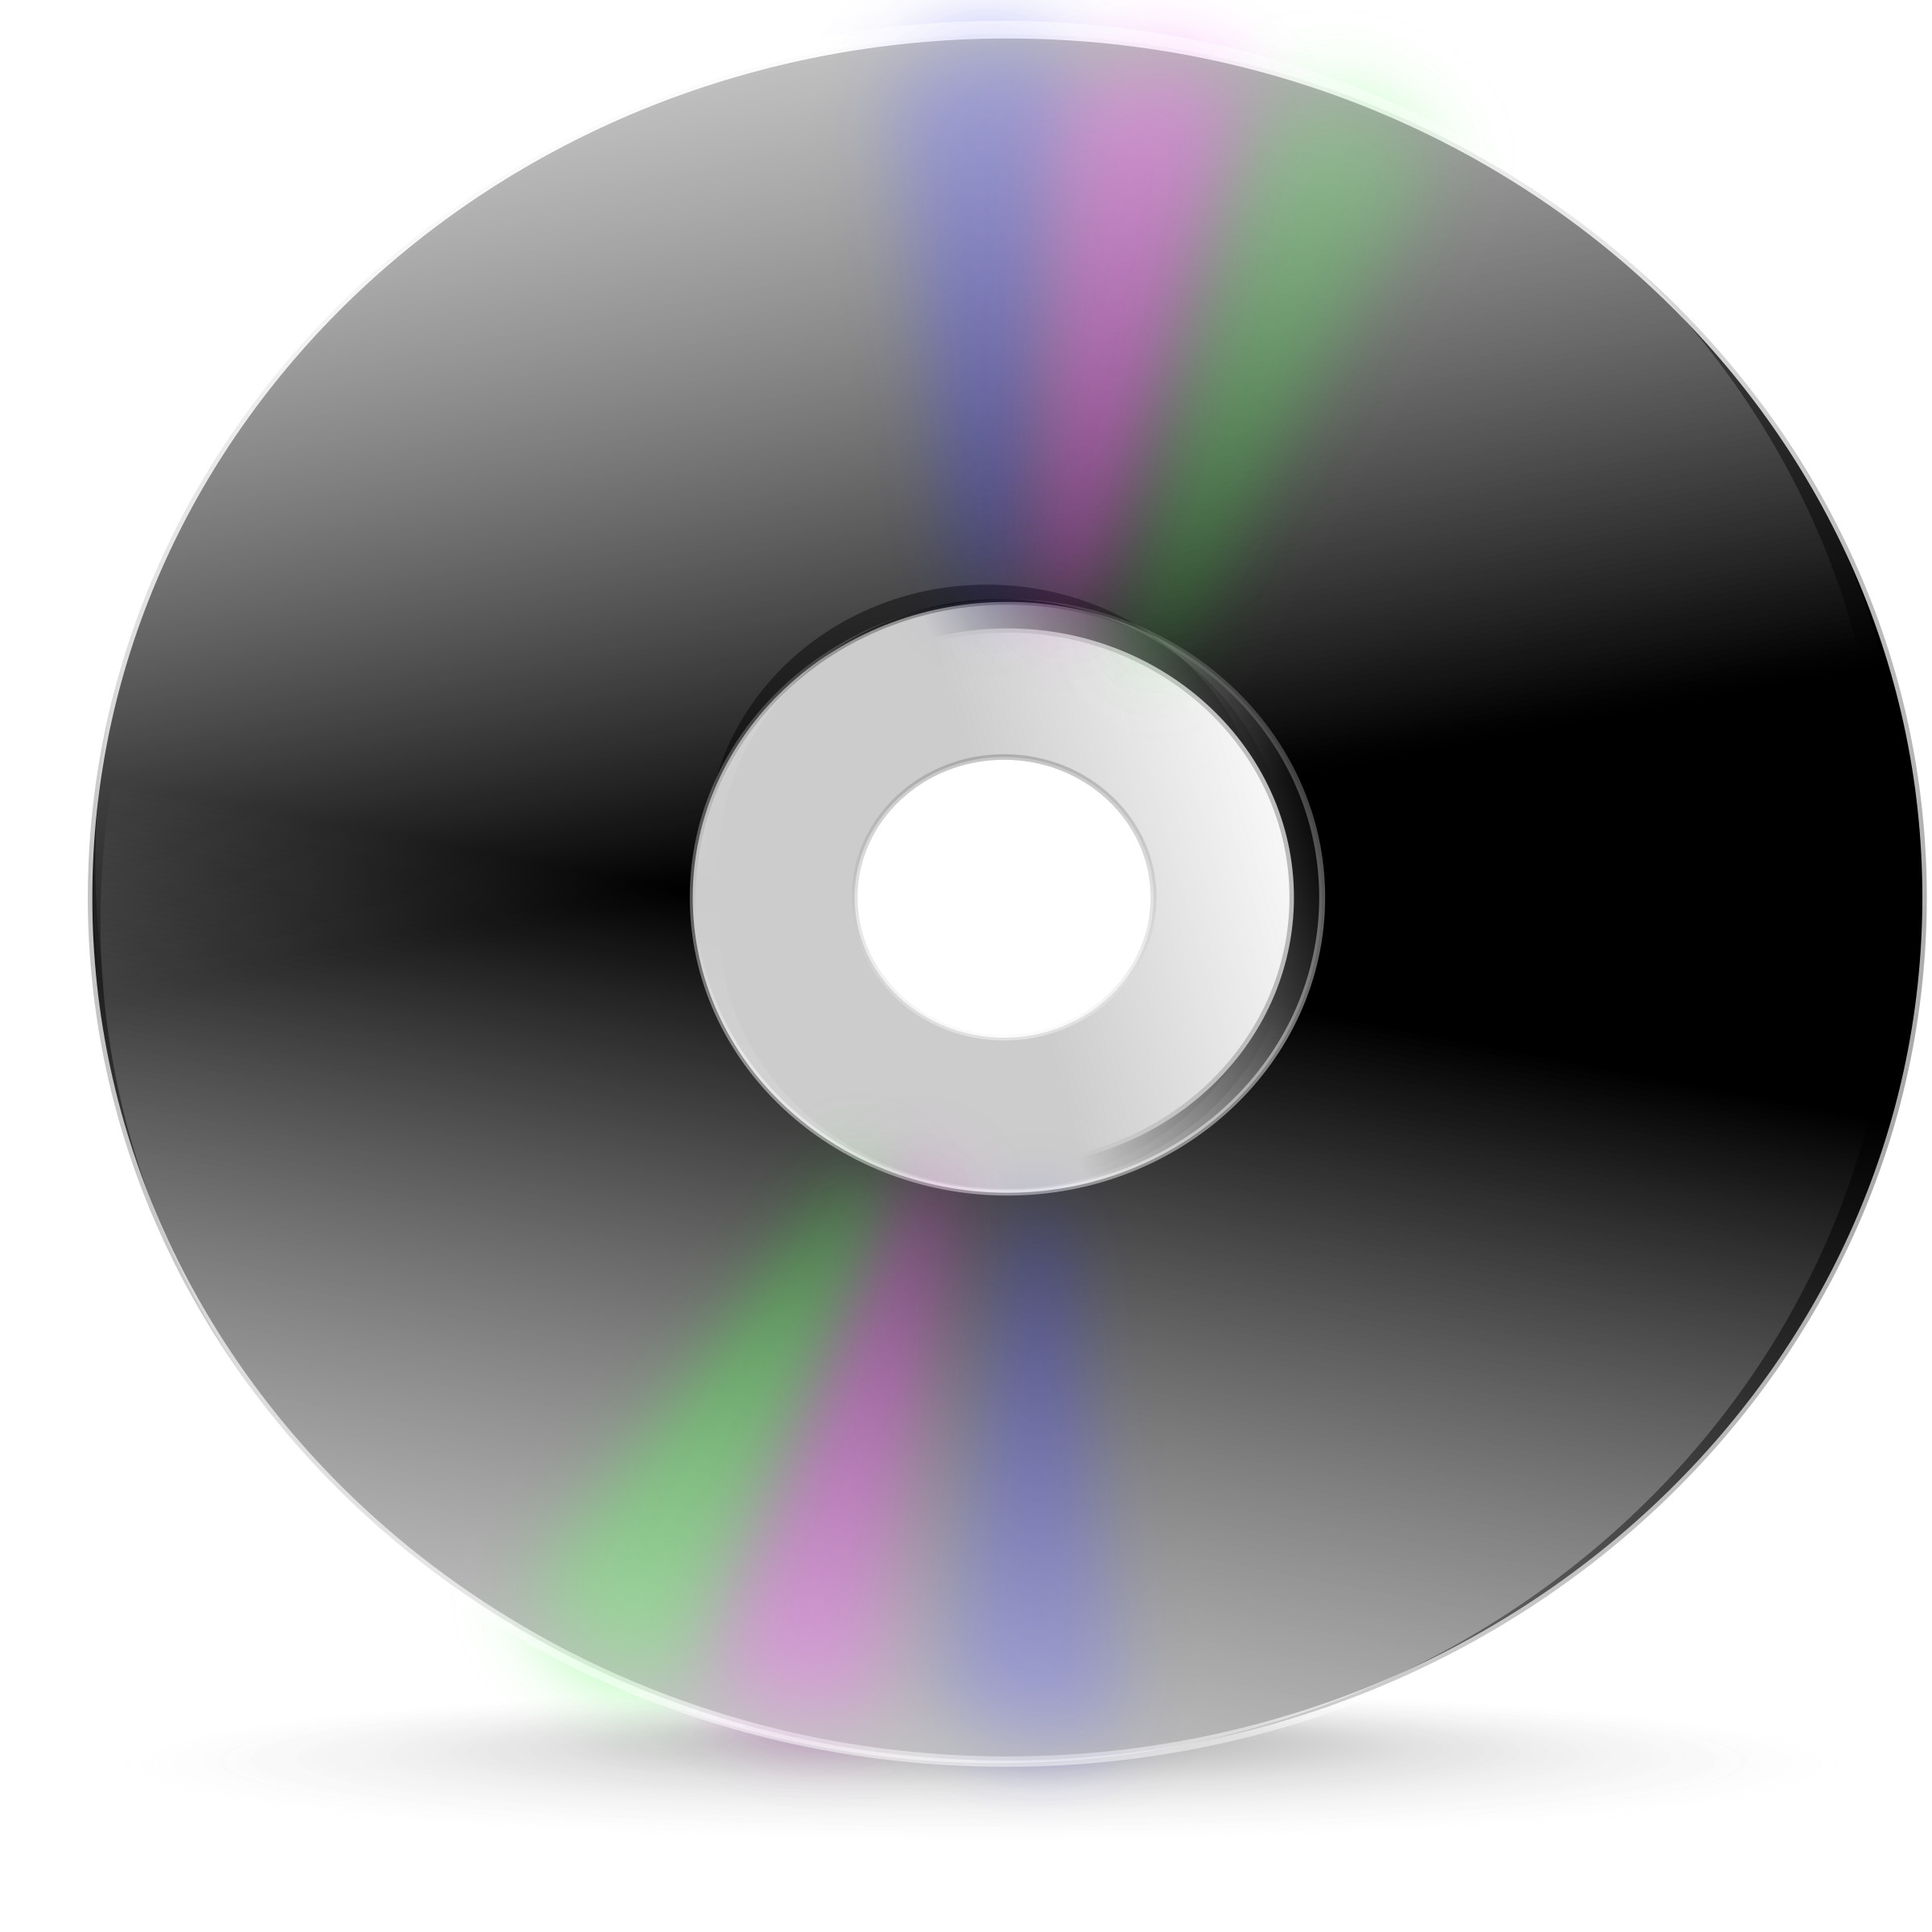 Cd clipart storage device. Netalloy big image png